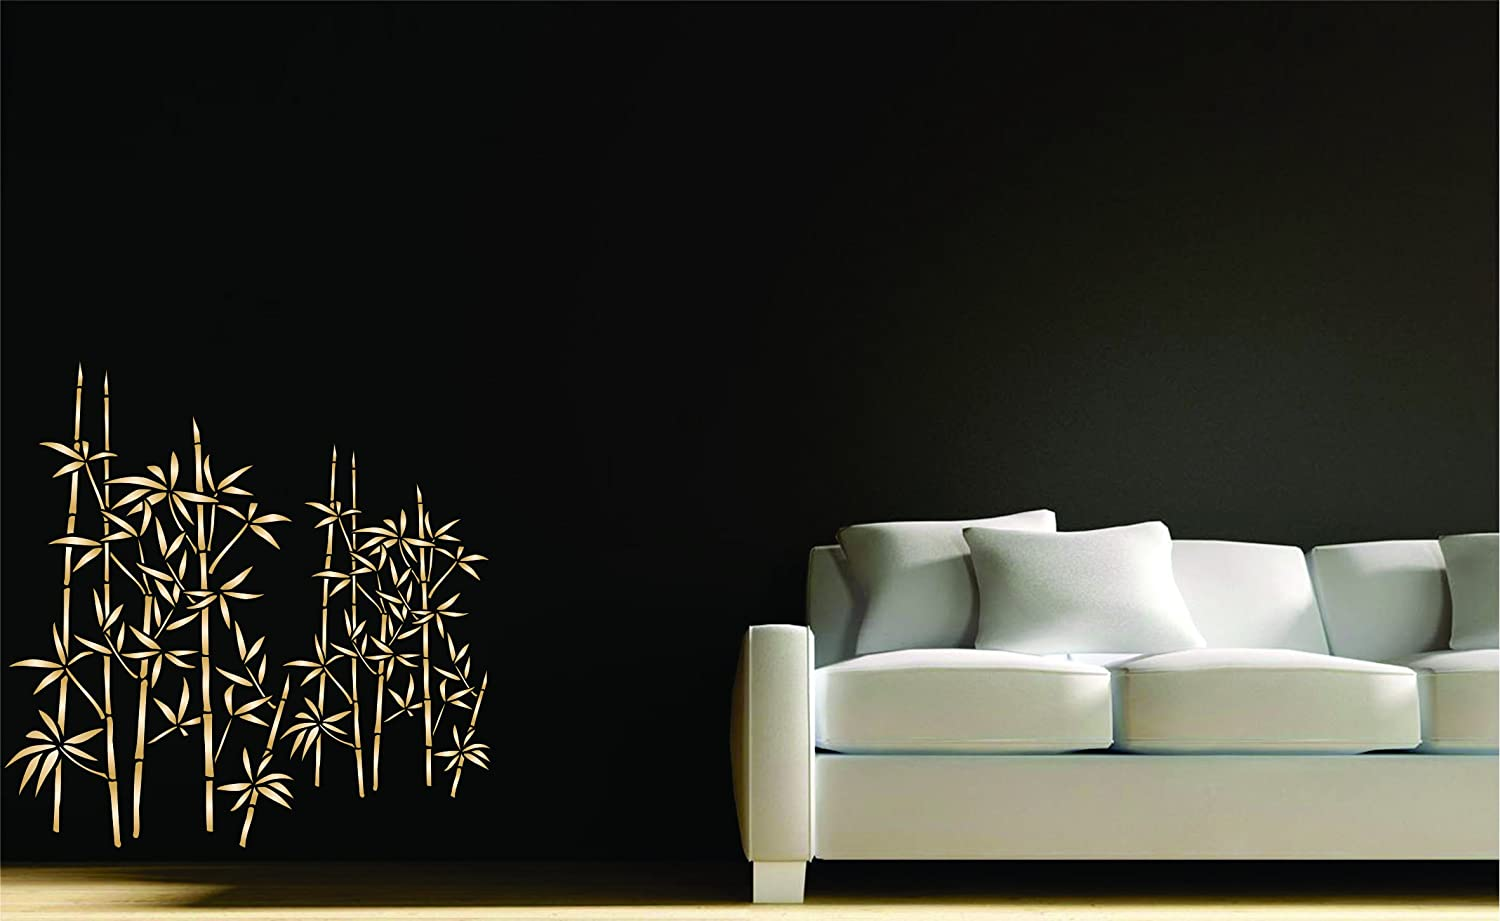 Wall stencils amazon choice image home wall decoration ideas amazon bamboo stencil size 10w x 16h reusable wall amazon bamboo stencil size 10w x 16h amipublicfo Gallery